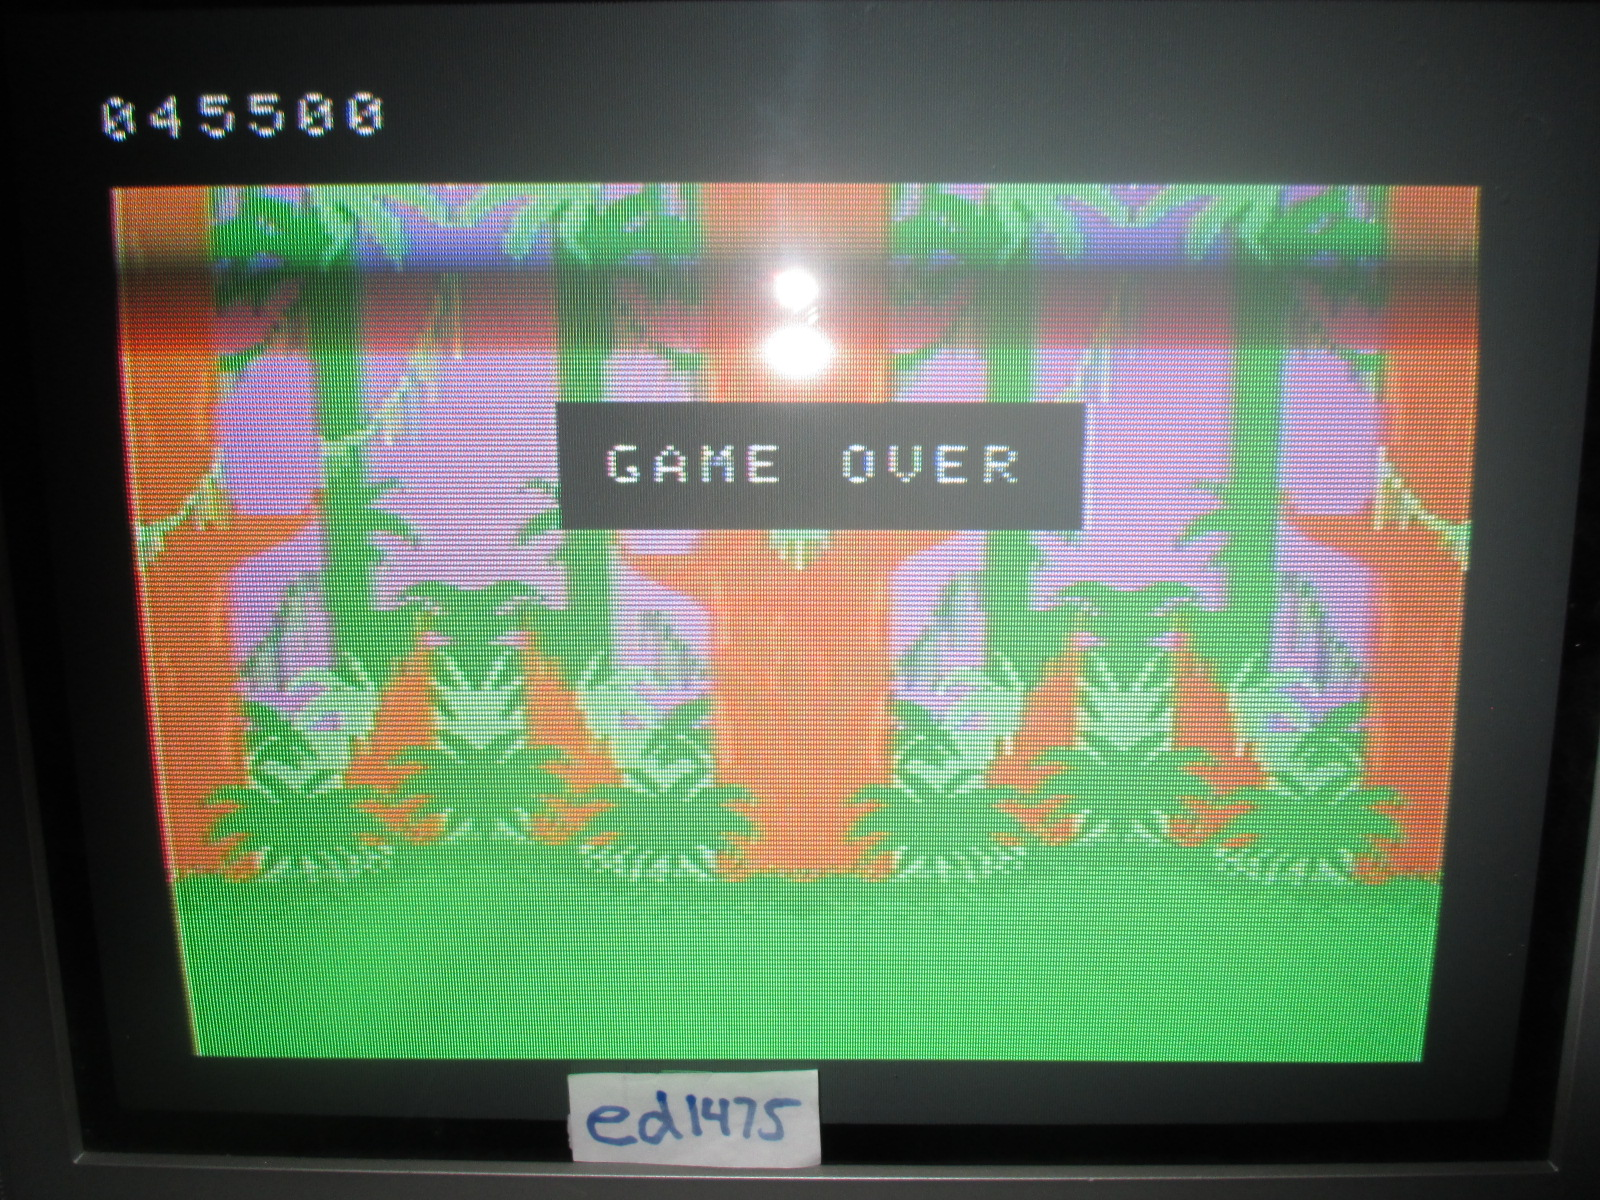 ed1475: Tarzan: Skill 1 (Colecovision) 45,500 points on 2014-06-20 14:39:09